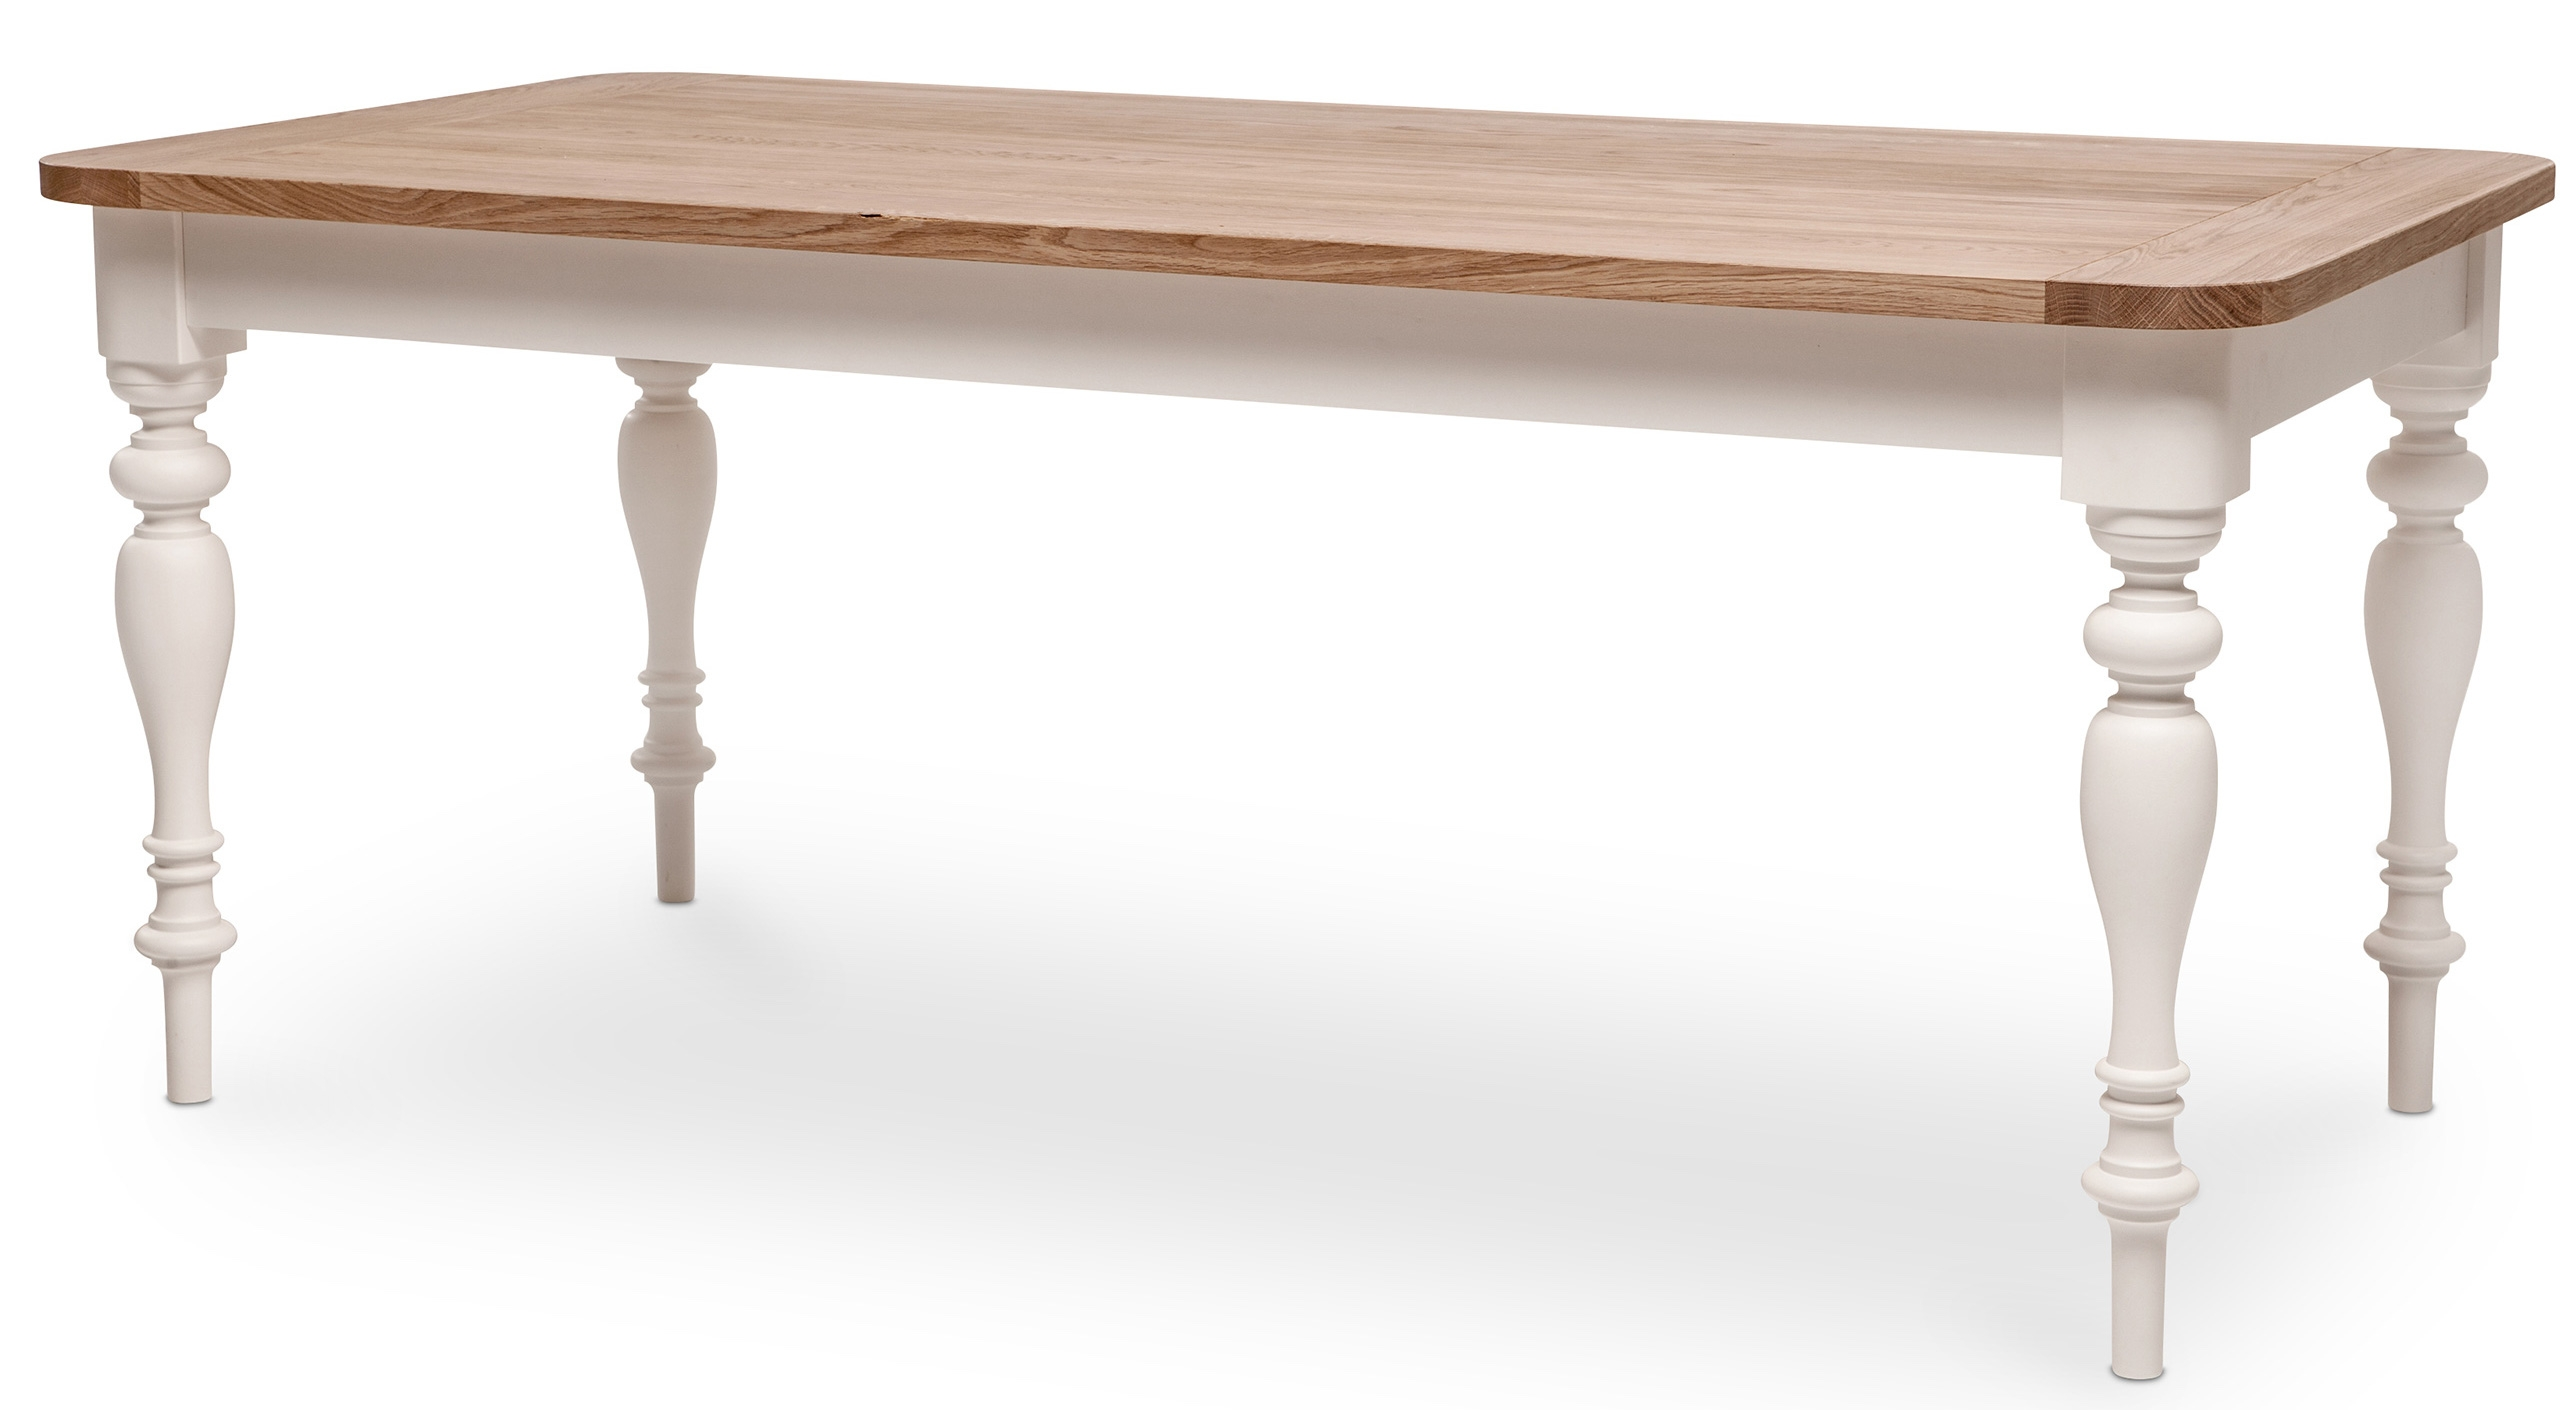 Table bois massif brut manger rustique design de maison for Table a manger bois brut